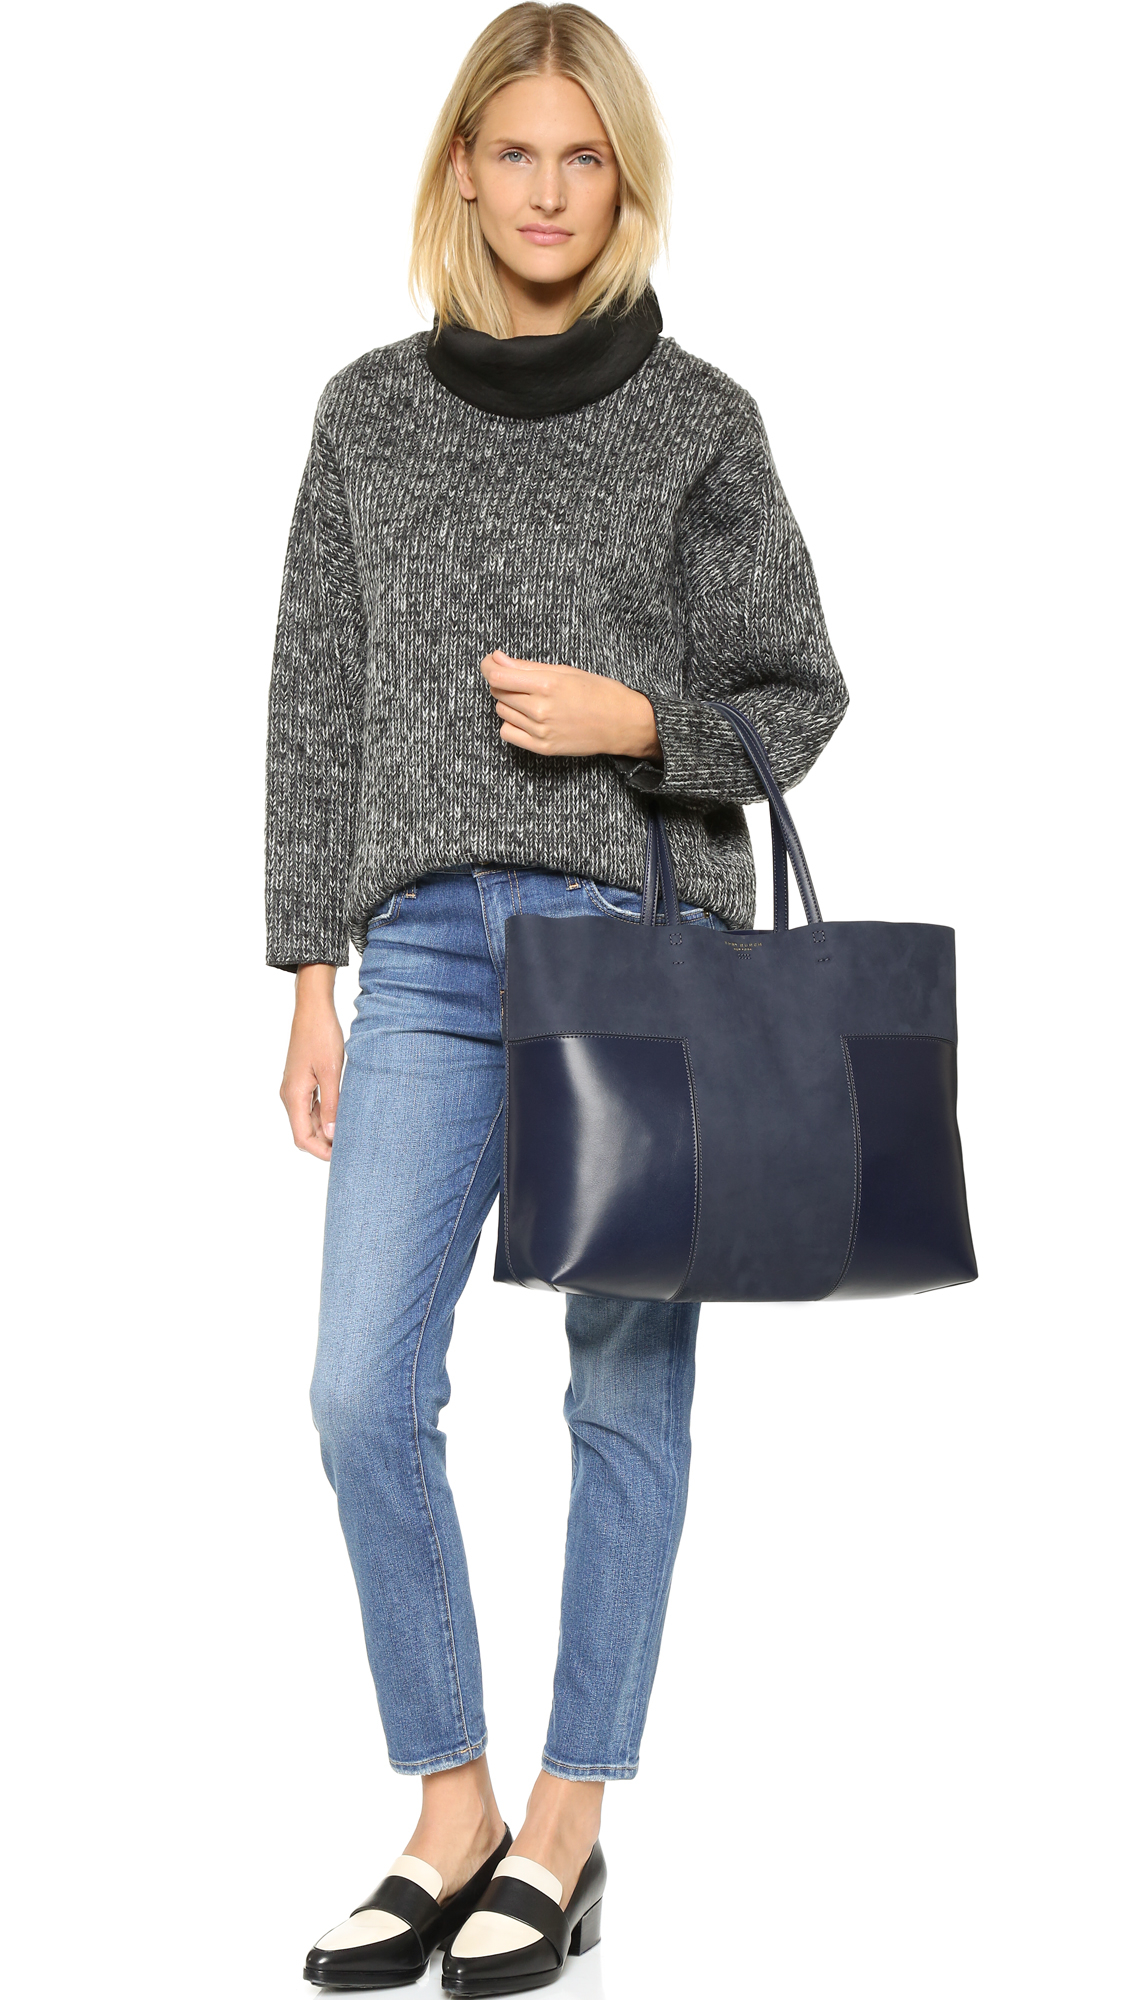 b2b439162cf2 Lyst - Tory Burch Block T Large Tote - French Gray in Blue